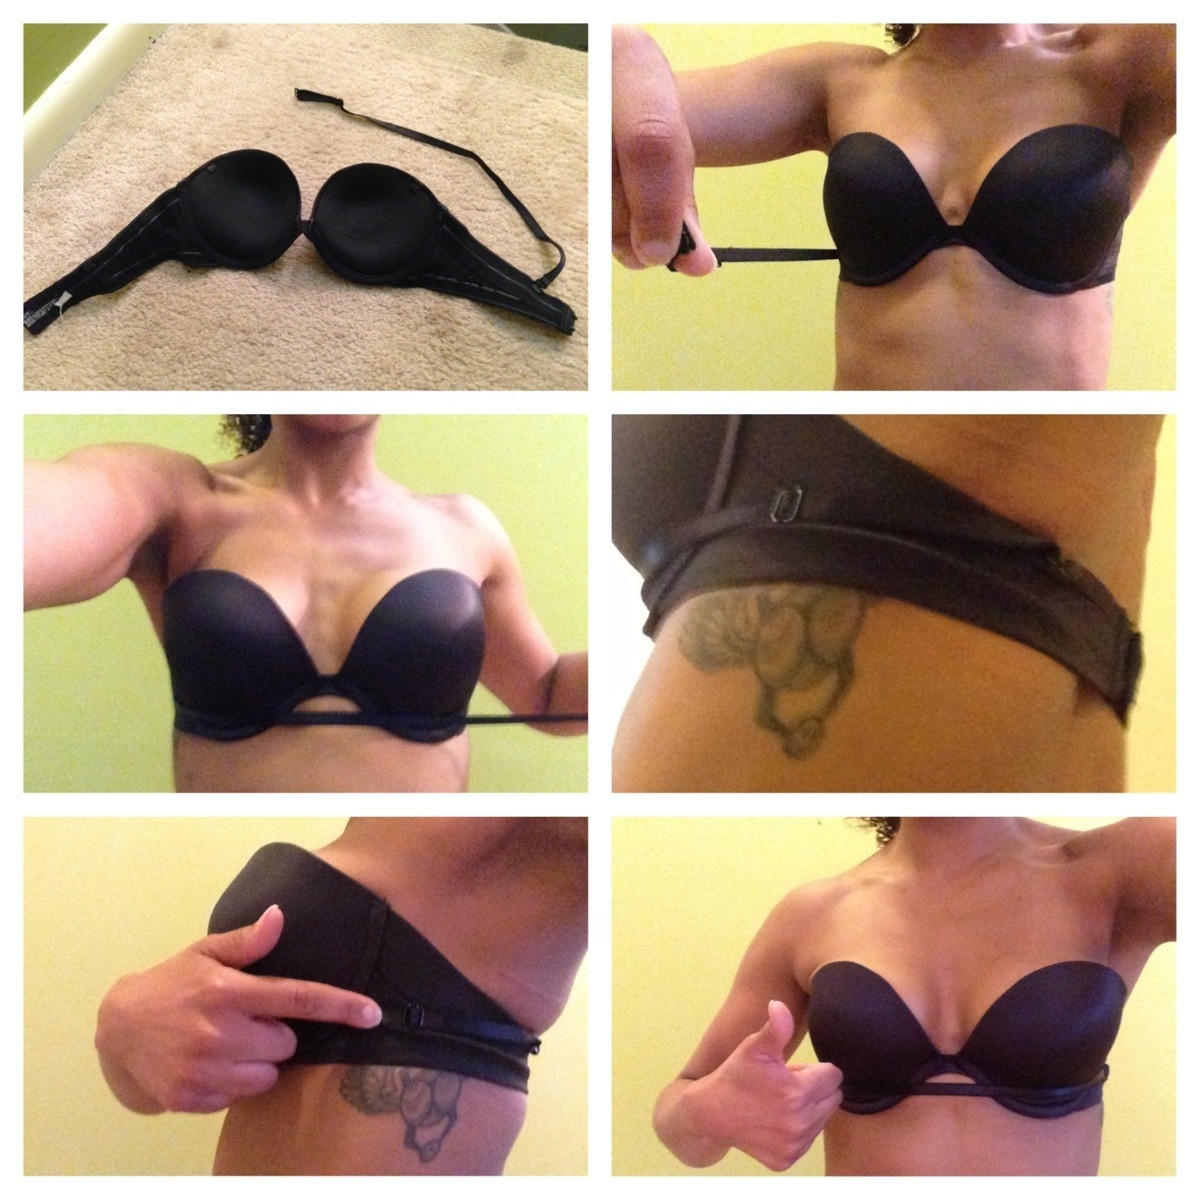 Add Support to Strapless Bra Hack